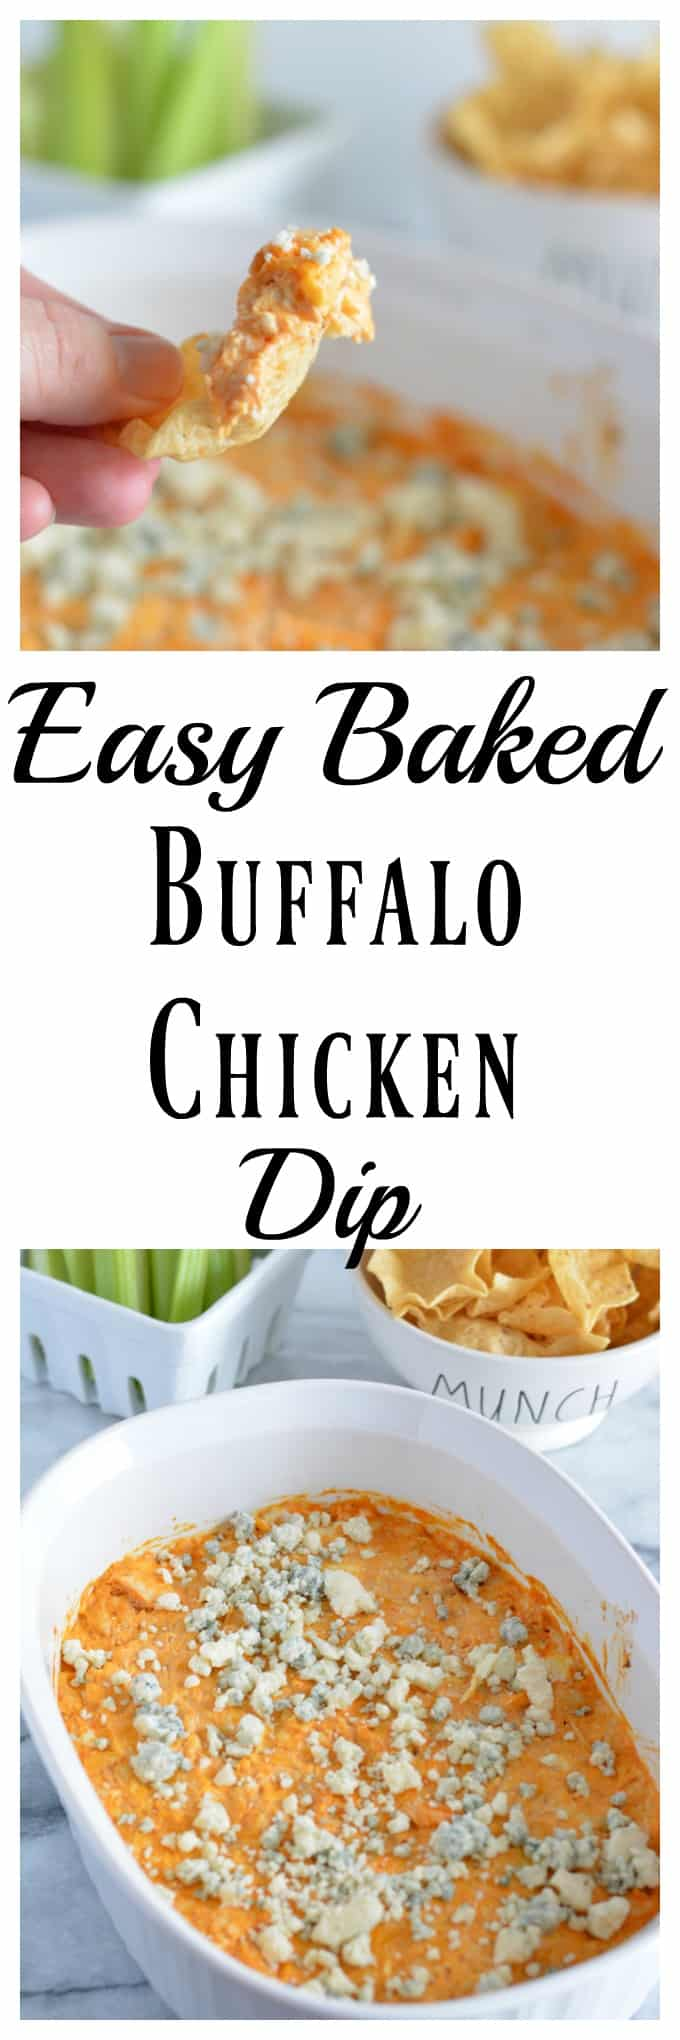 This easy baked buffalo chicken dip is ready in under 30 minutes. No party is complete without this protein-rich dip. #appetizer #dip #superbowl #football #party